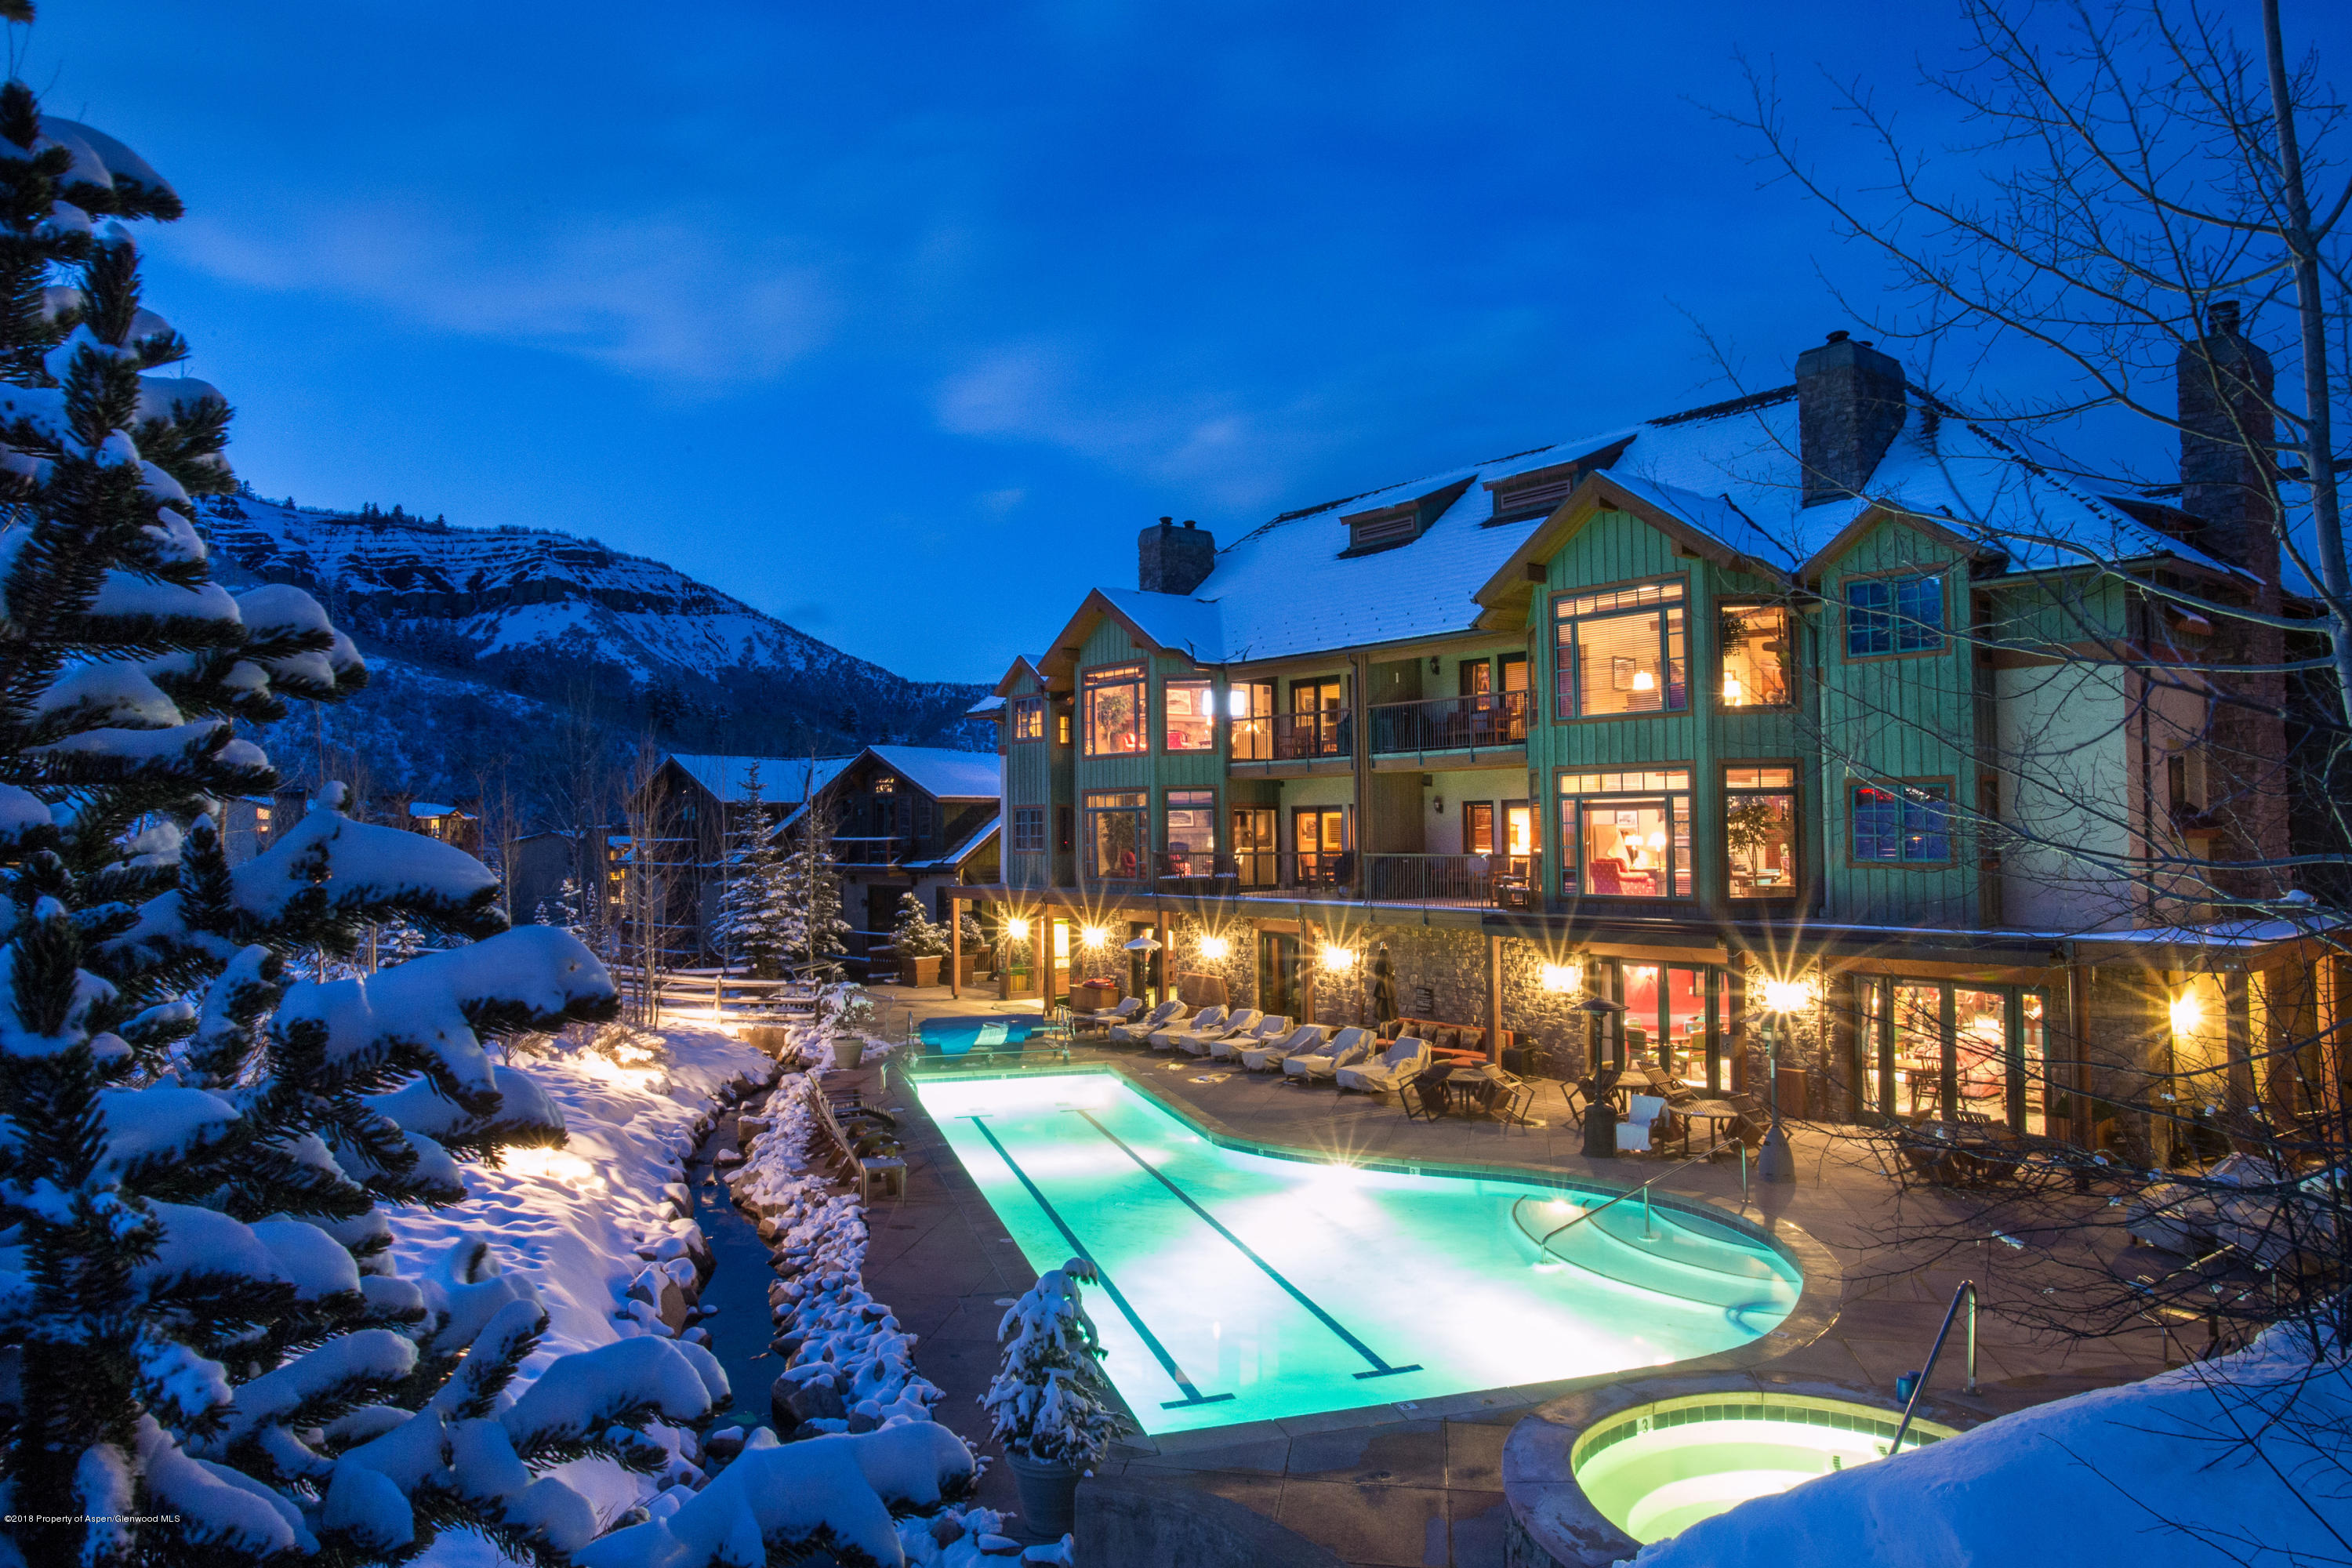 115 Timbers Club Court, B2-VIII - Snowmass Village, Colorado